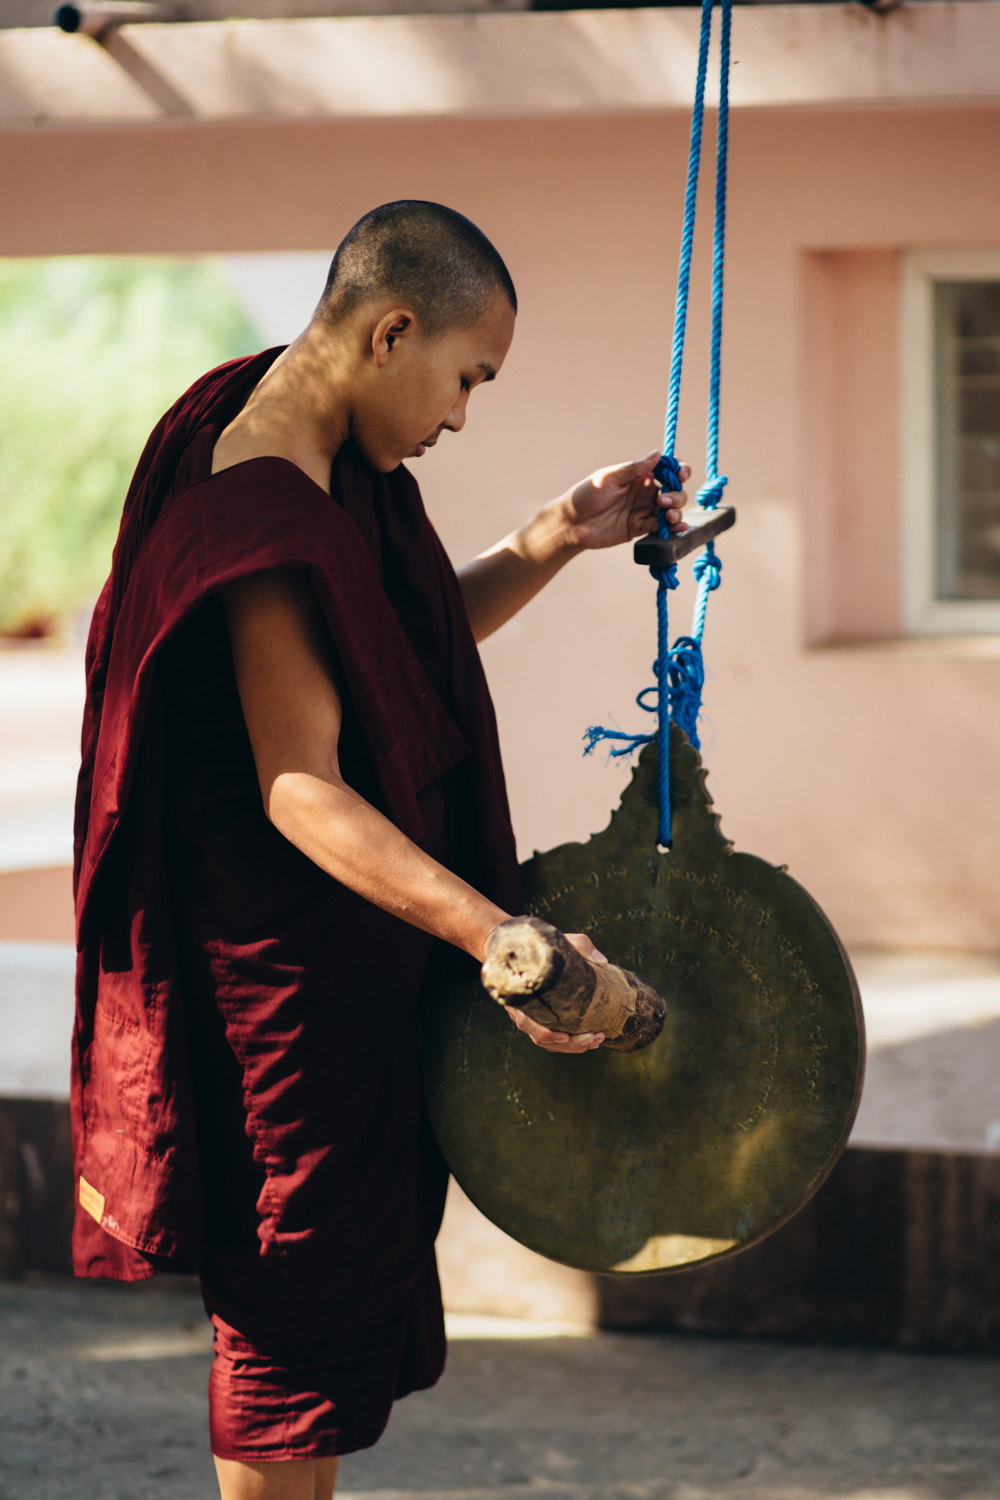 Monk ringing bell